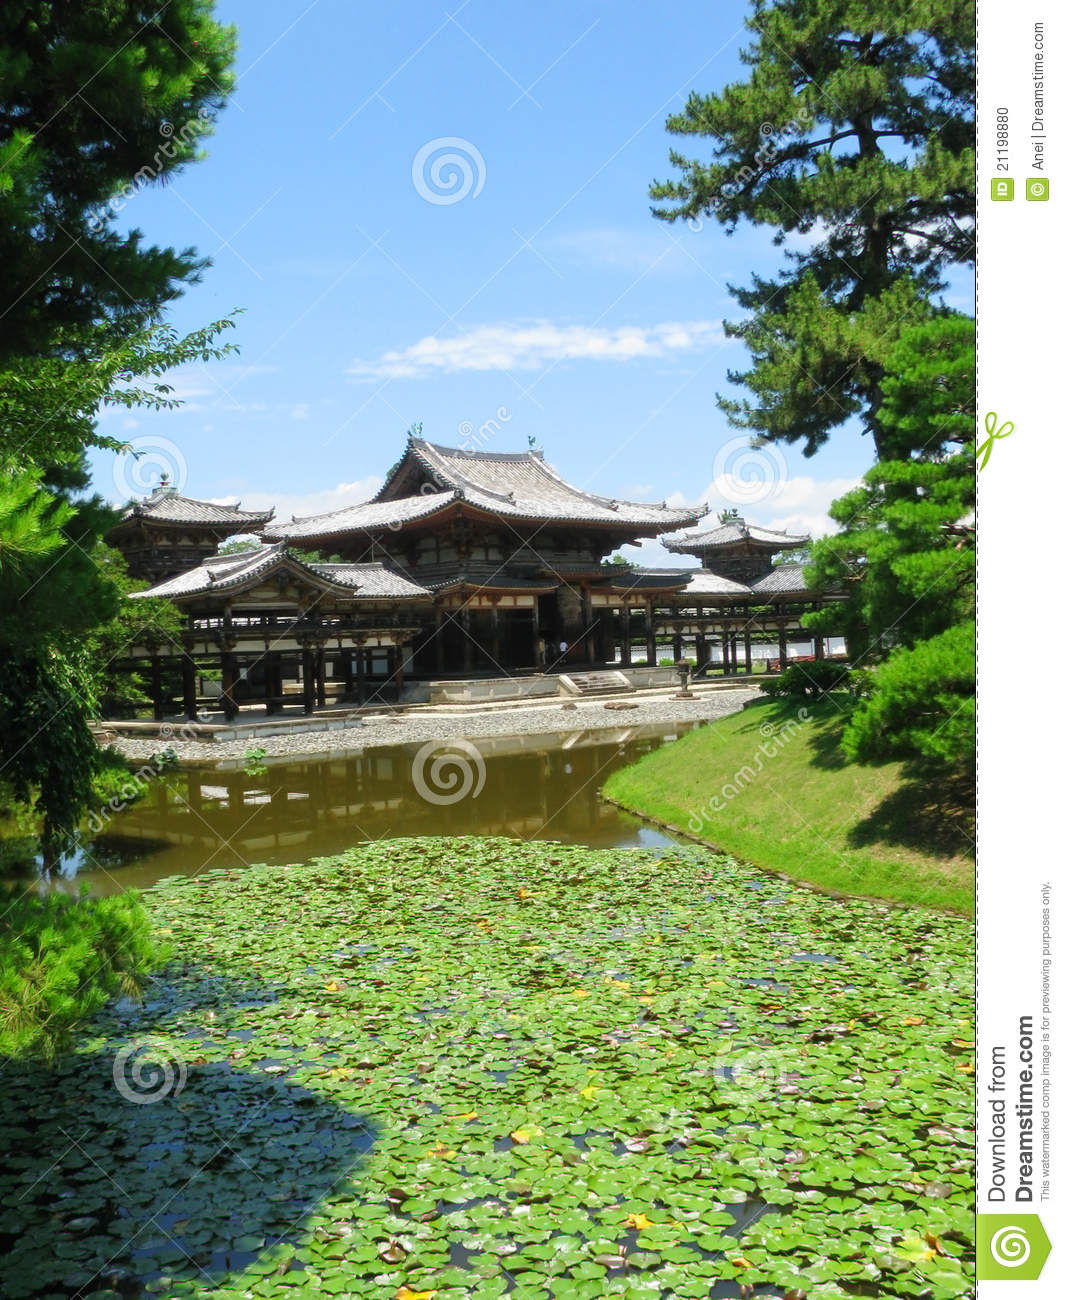 By water surrounded Phoenix Hall in Japan